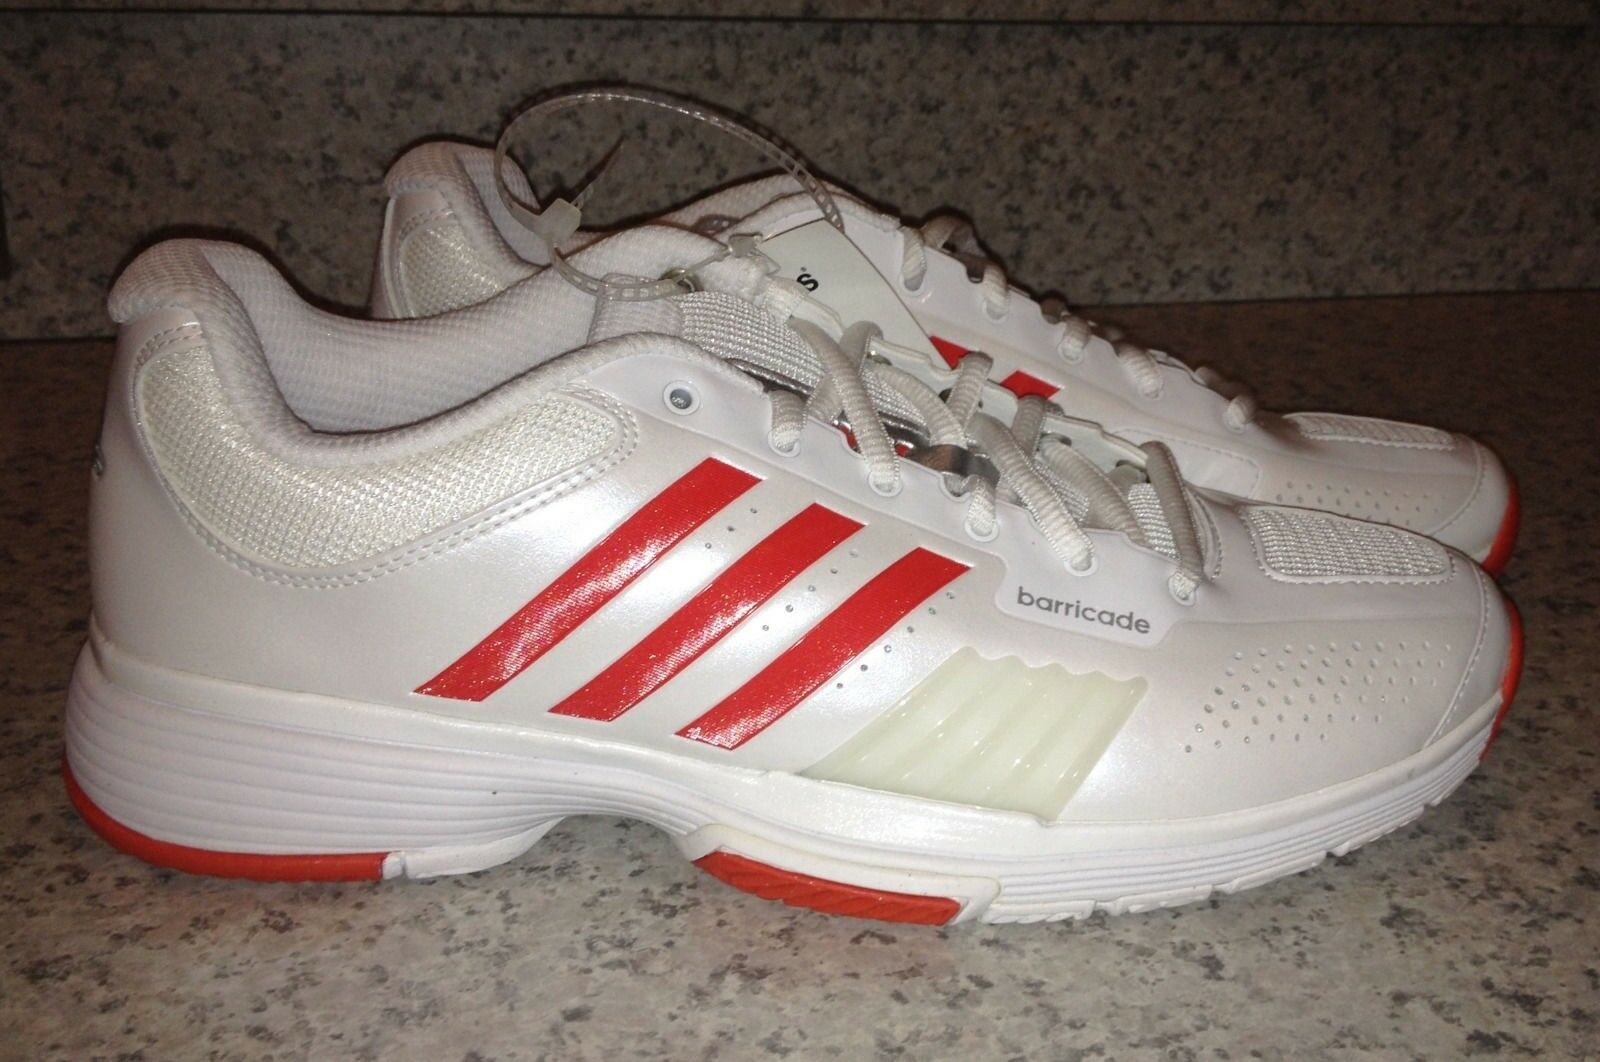 ADIDAS AdiPower Barricade 7 White Core Tennis shoes Sneakers NEW Womens Sz 10.5